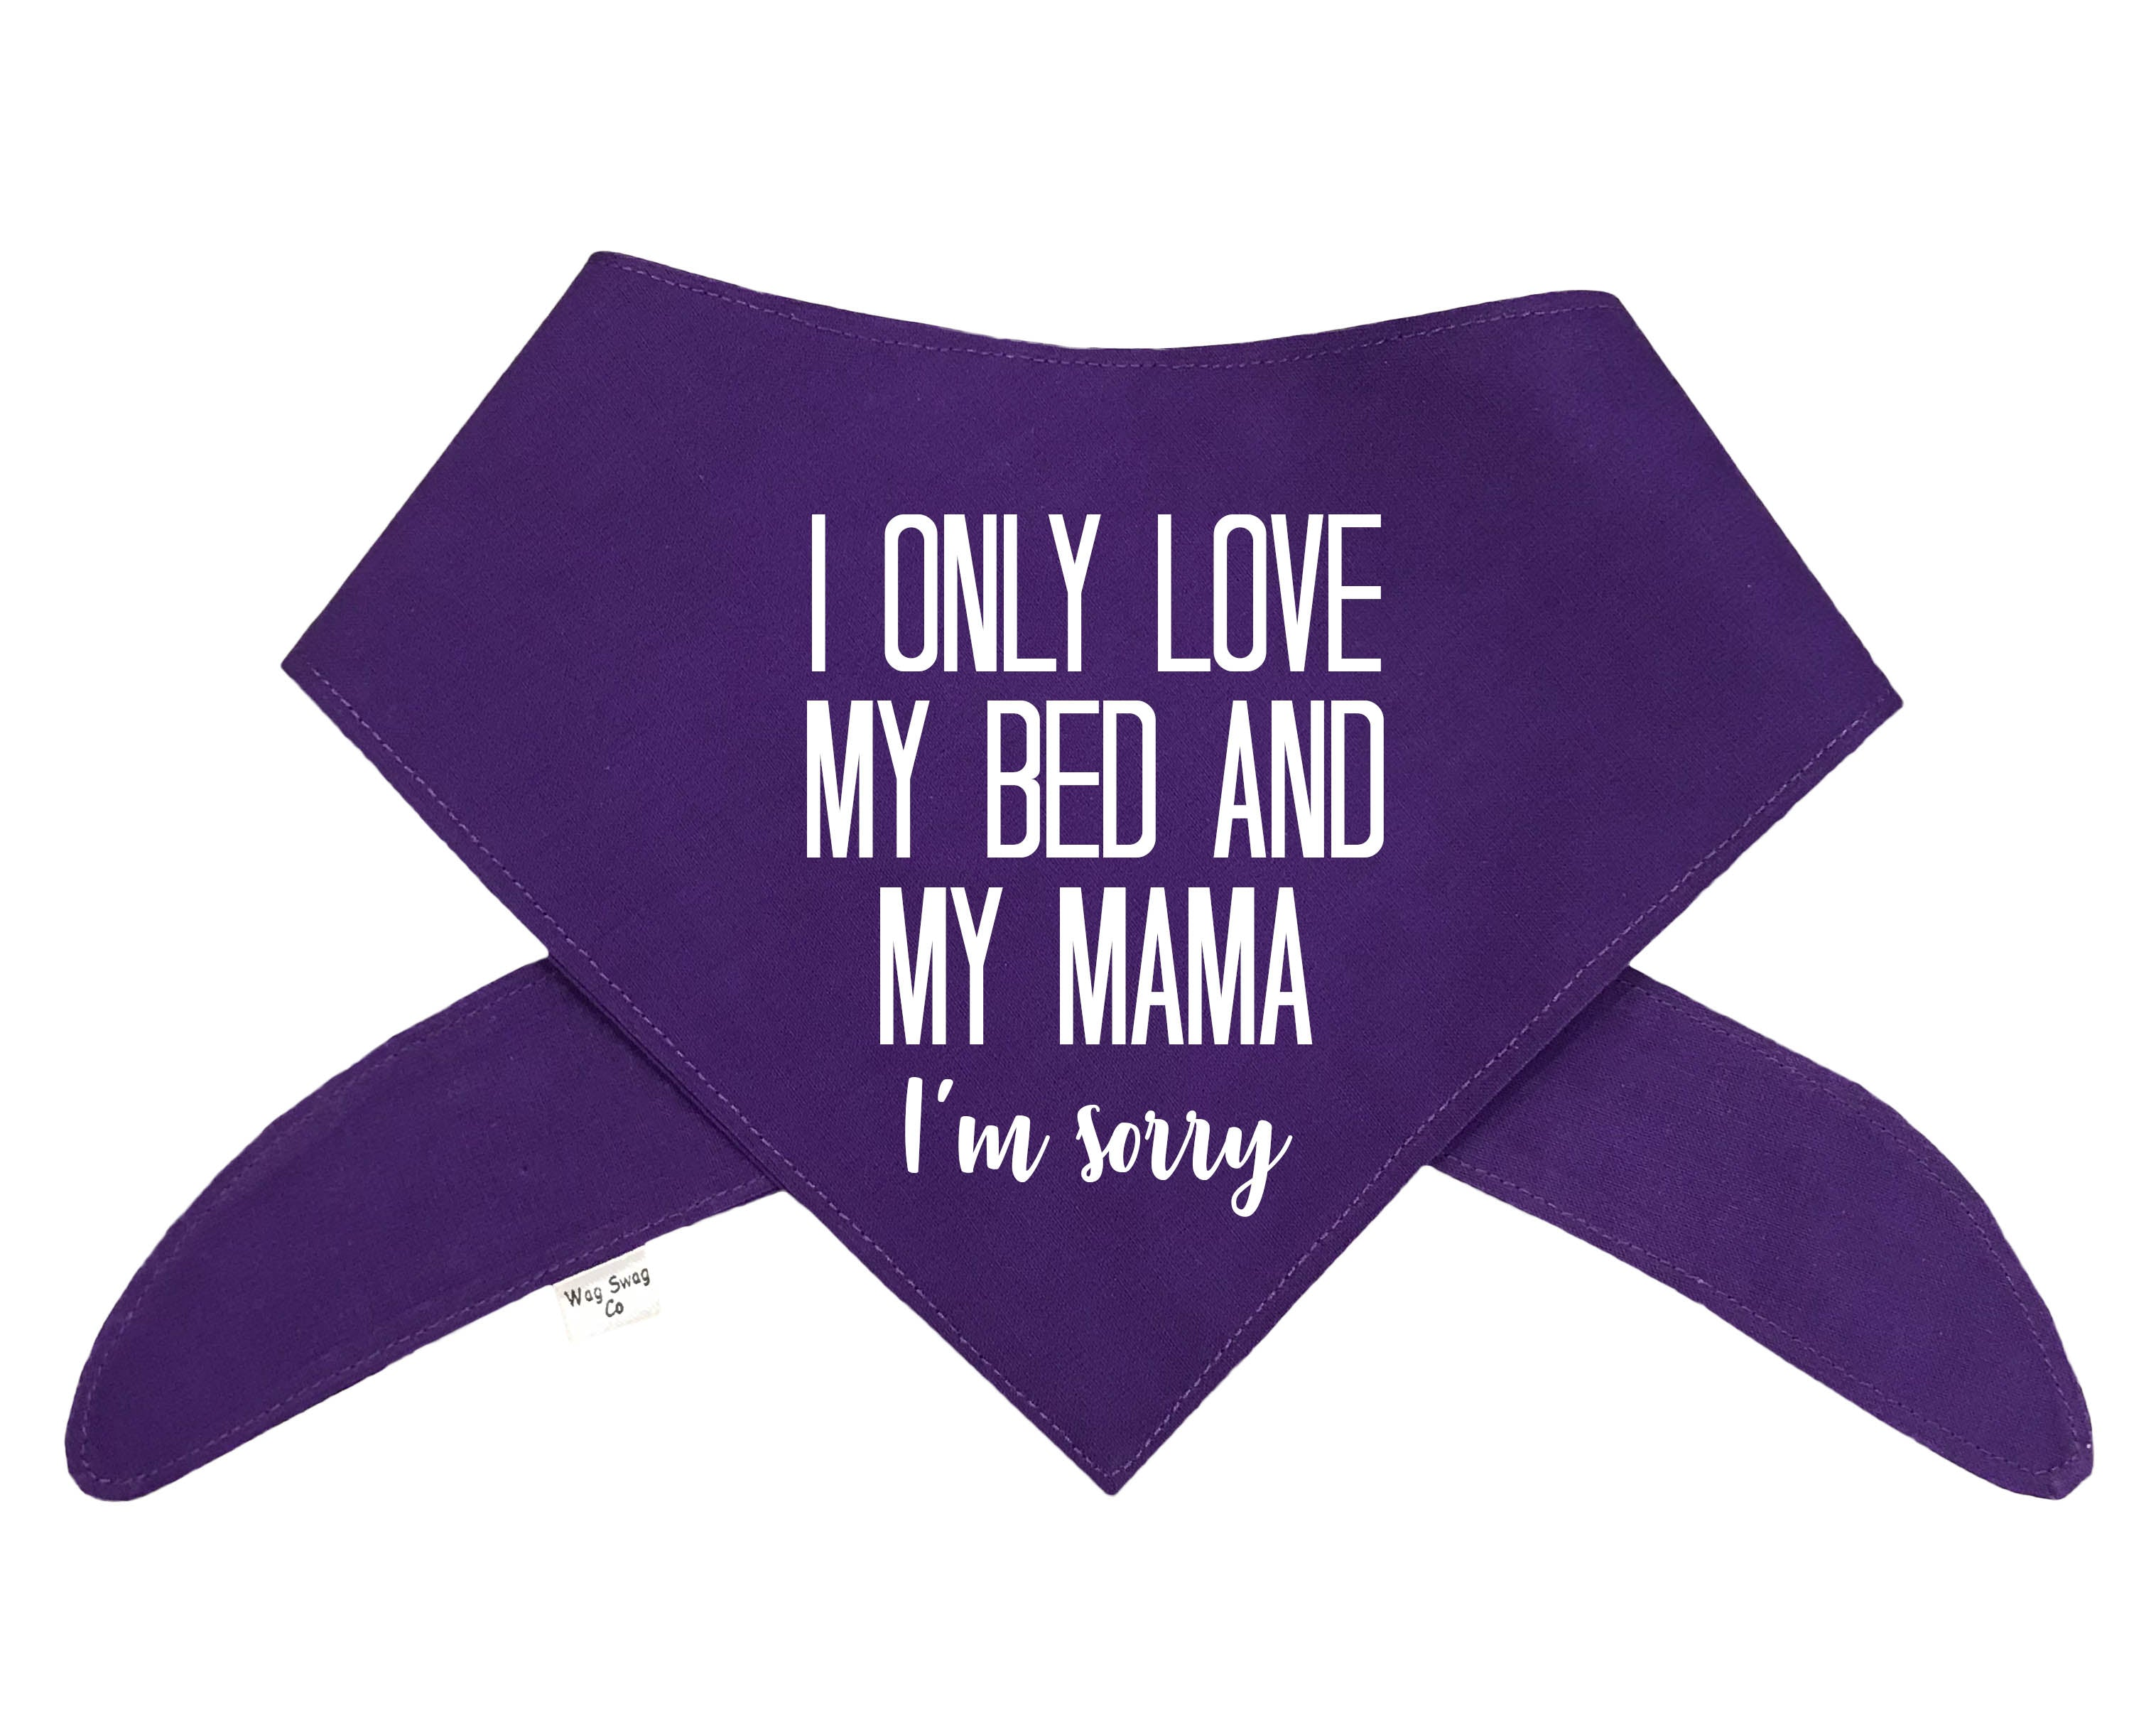 I Only Love My Bed and My Mama Bandana - Color Options Avail. (No Personalization)